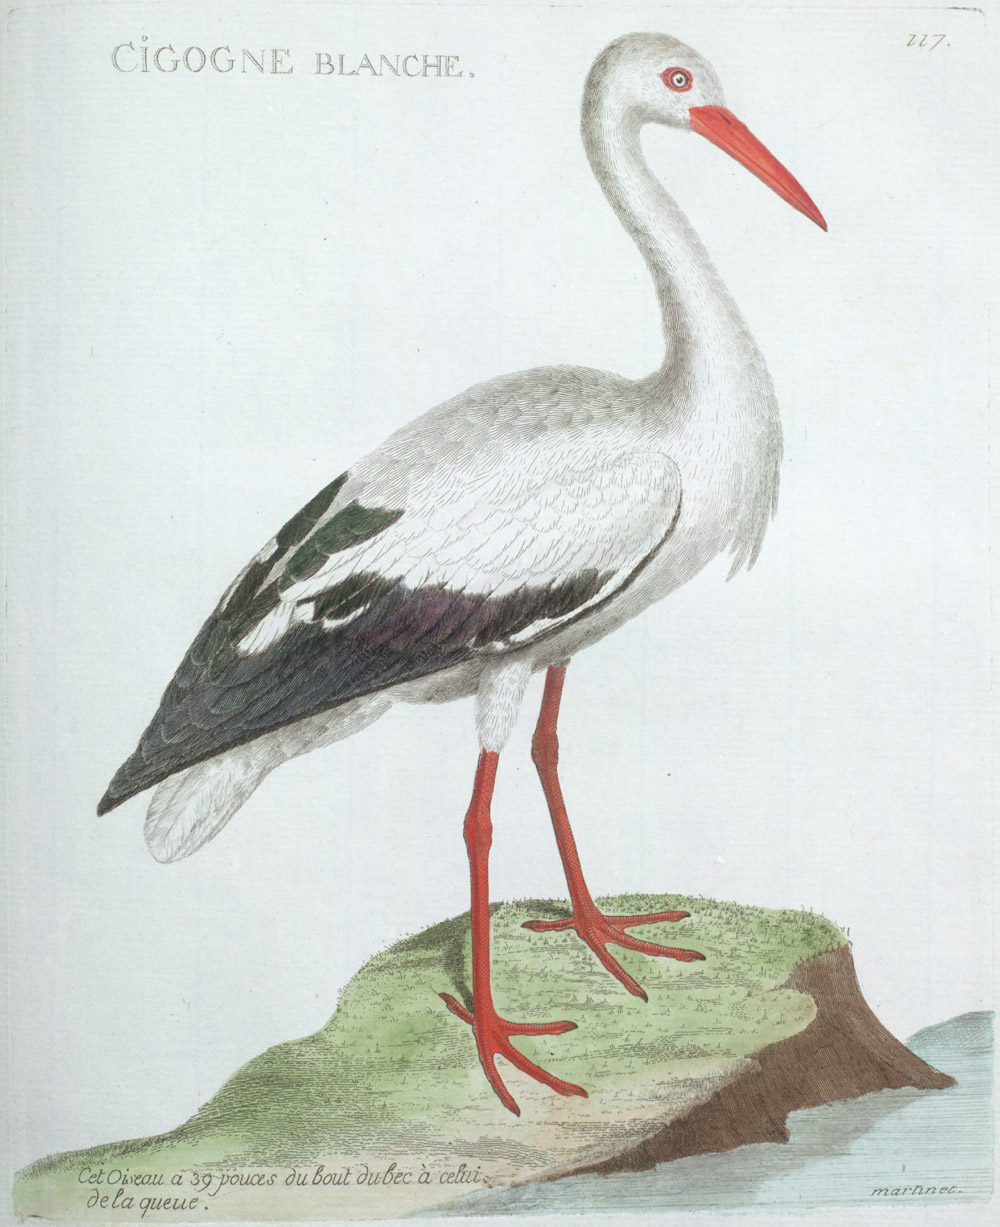 Plate 117: Cigogne Blanche,  Image number:SIL13-1-239b